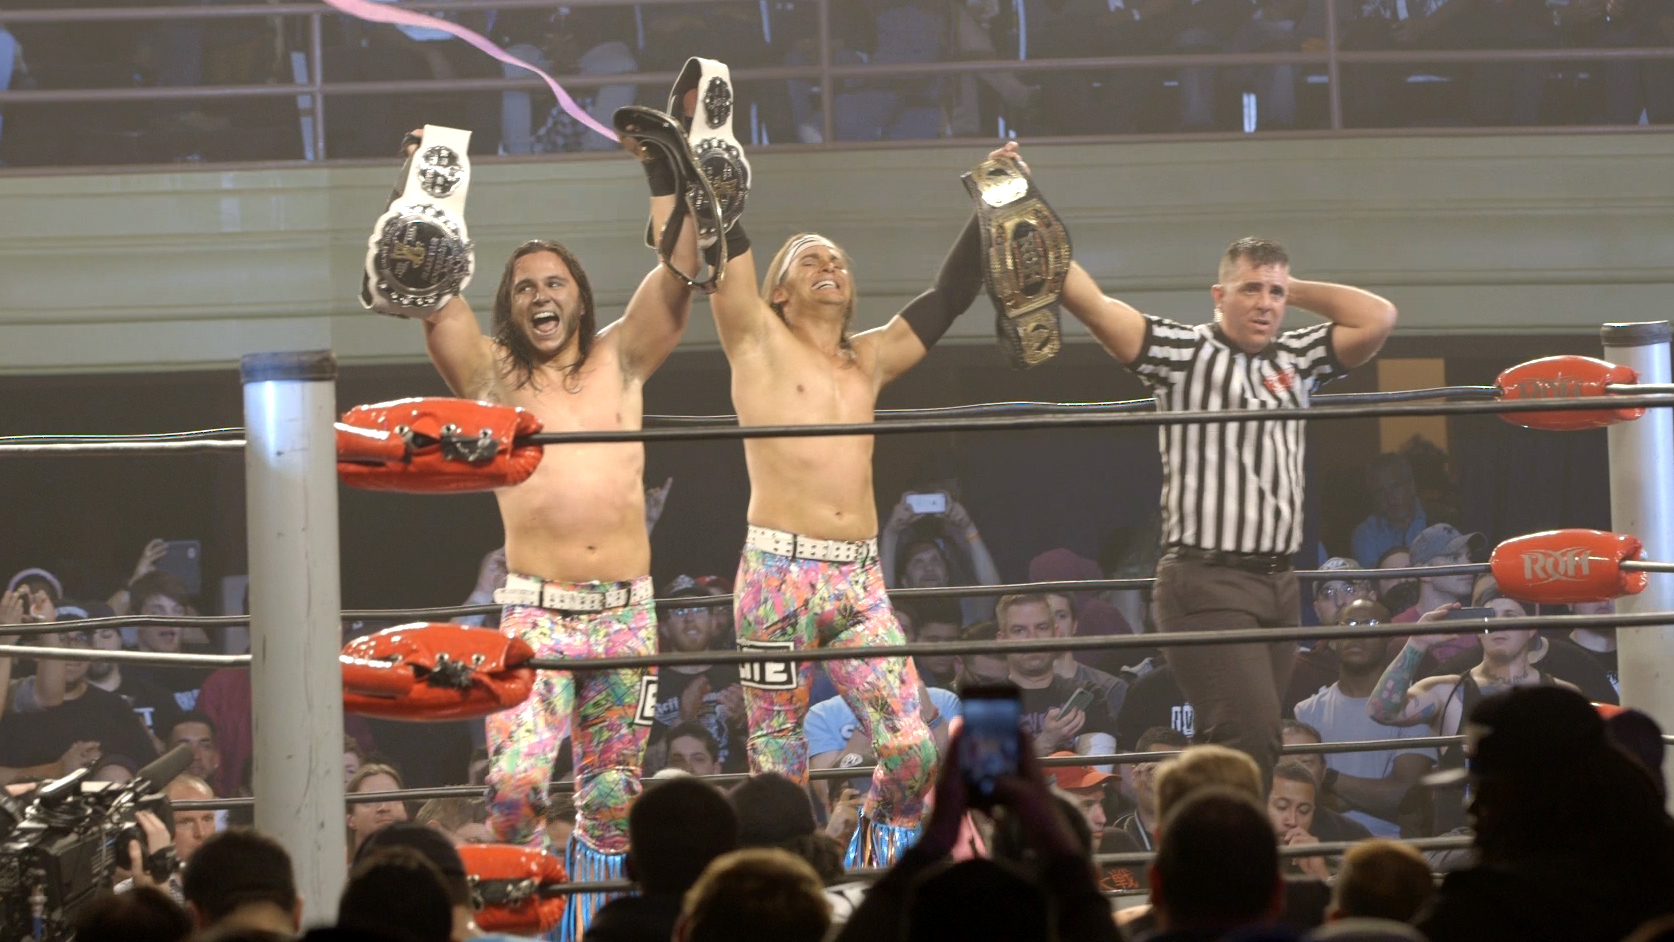 Watch The Young Bucks Super Kick Party Rolling Stone